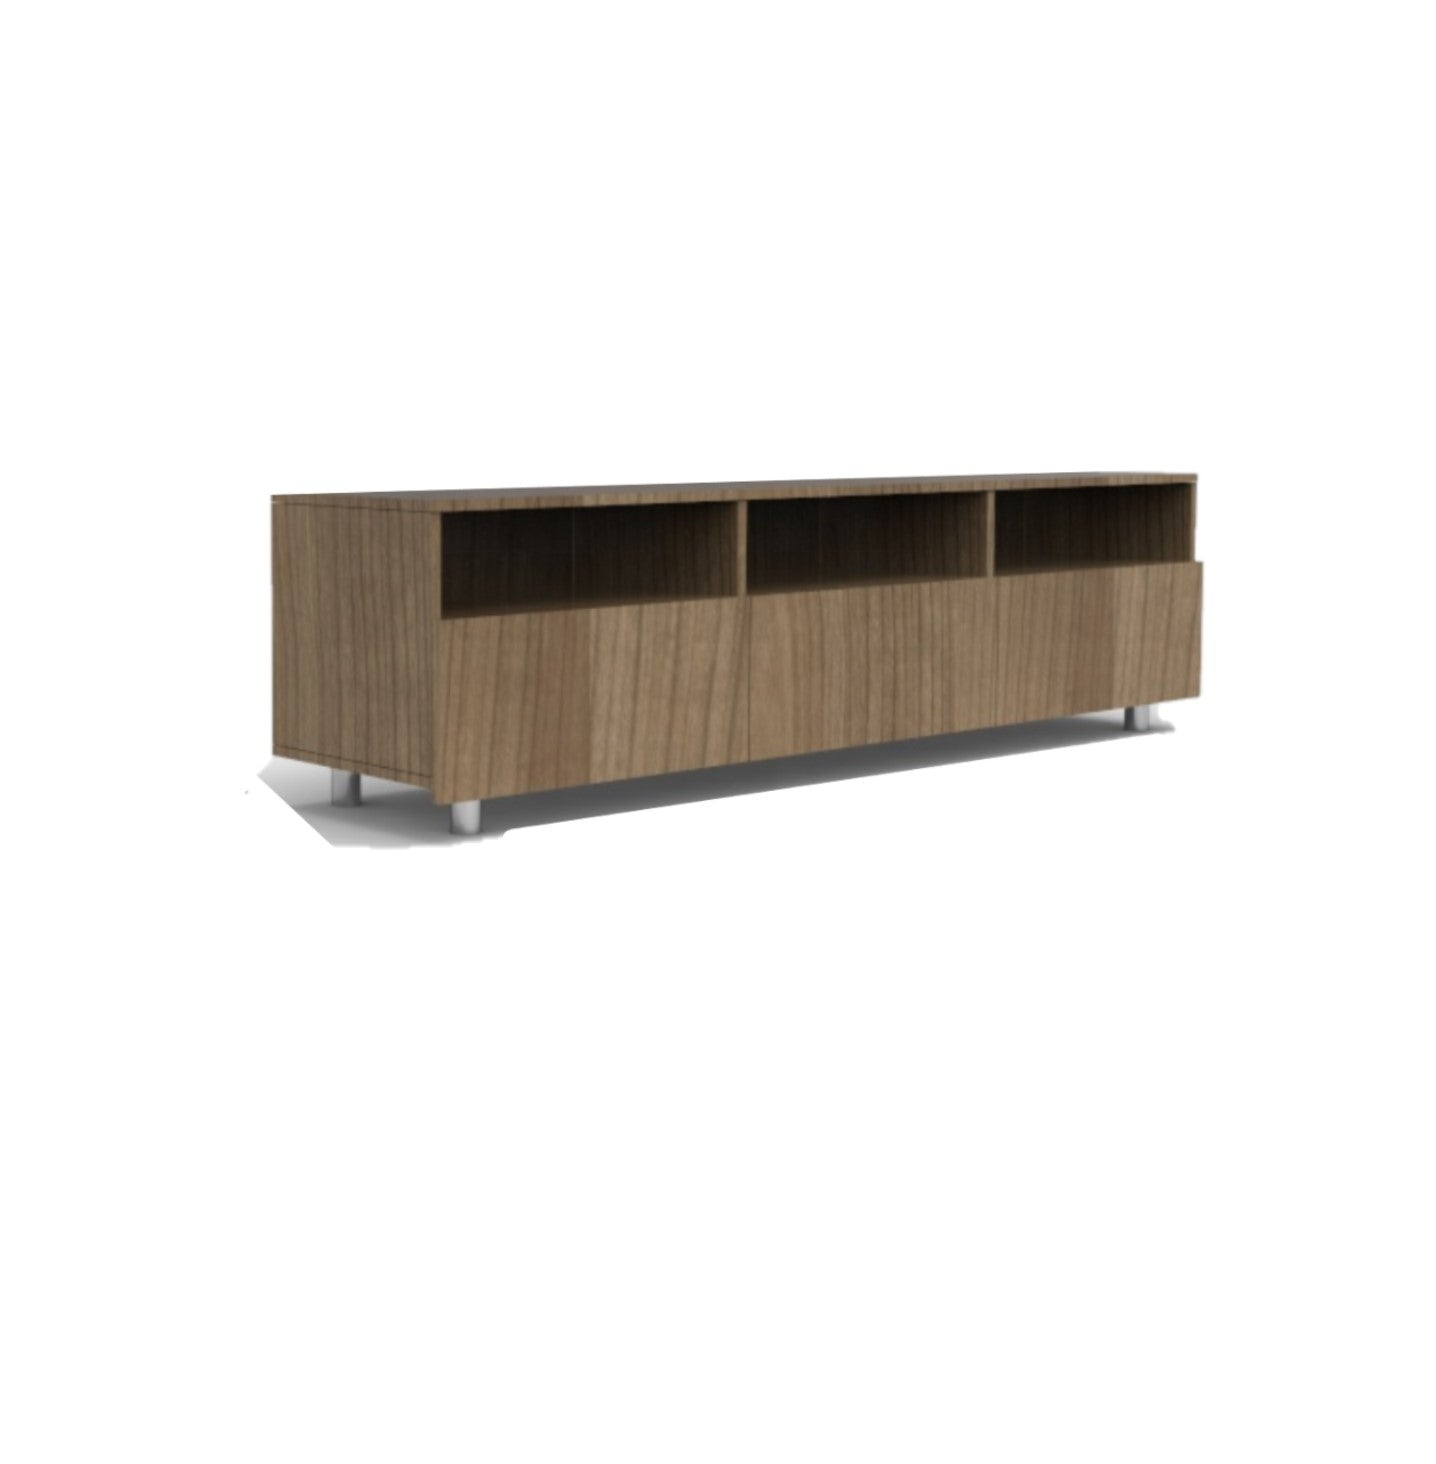 EUNIT 01 – EXCLUSIVELY CUSTOM MADE TV CONSOLE